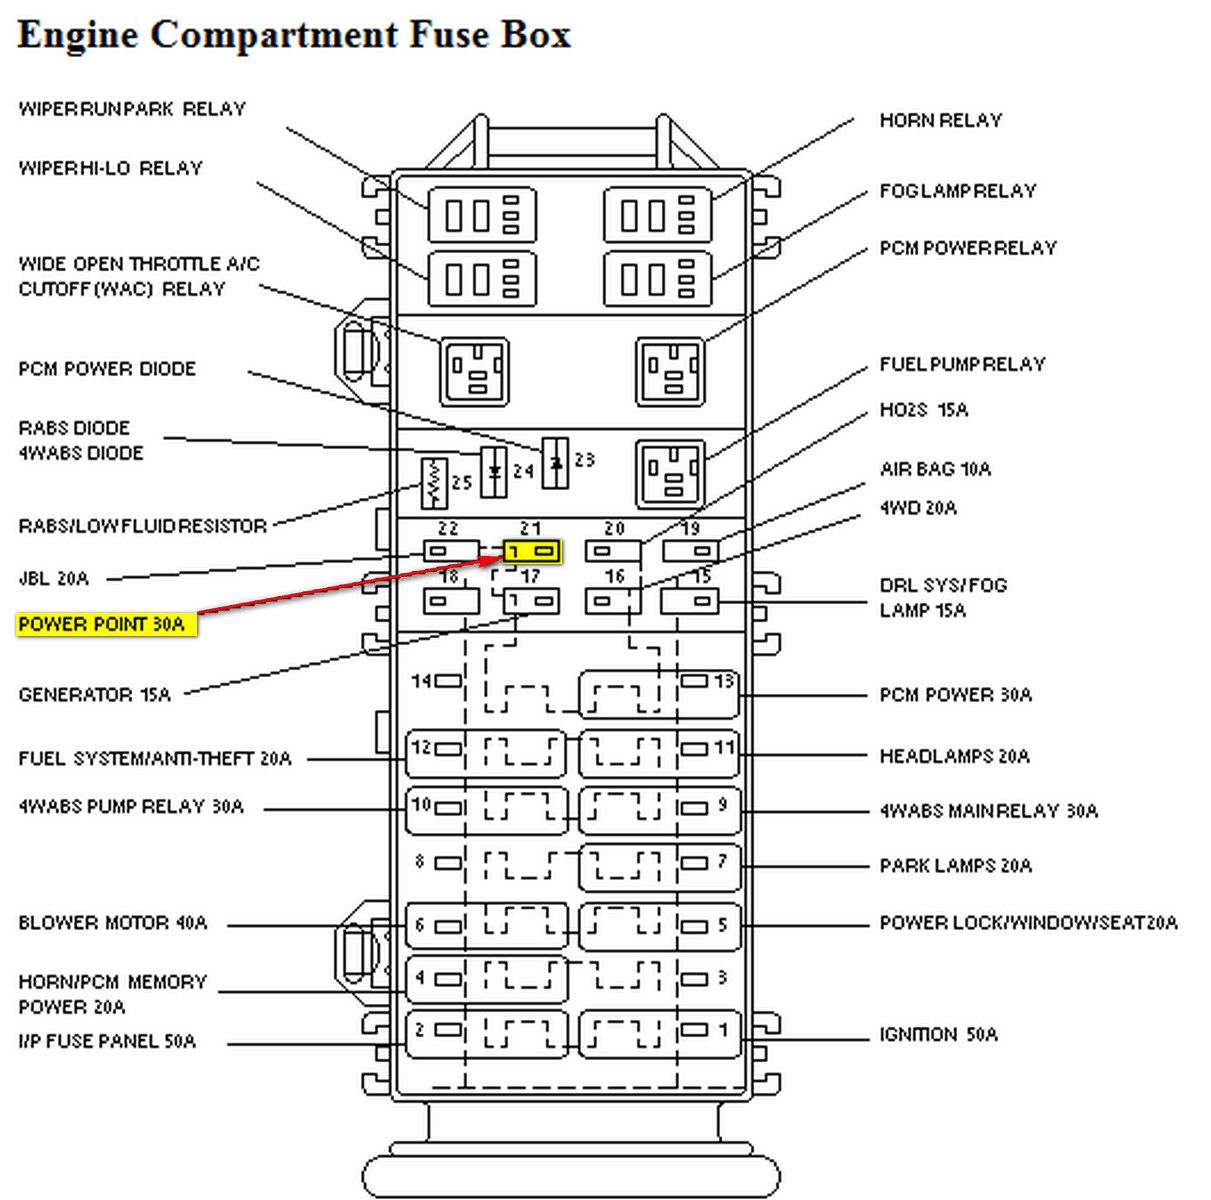 hight resolution of wrg 4838 2002 ford f 150 fx4 fuse panel diagram1996 f250 fuse box diagram